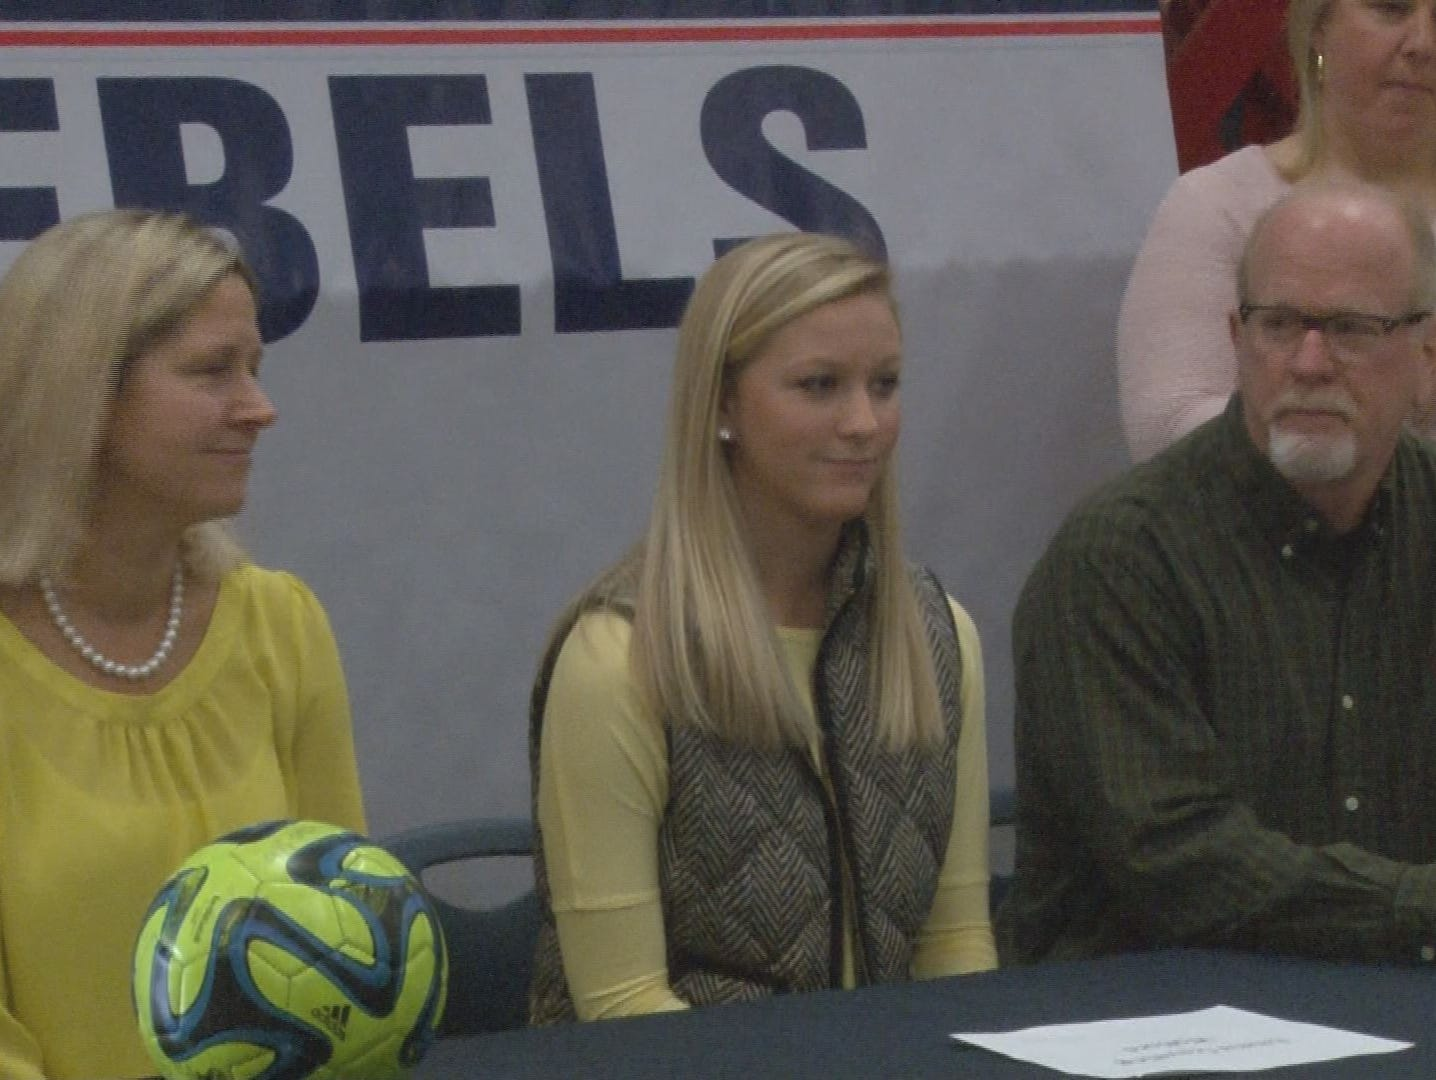 Emma Creveling, West HS, signed to play at Wofford